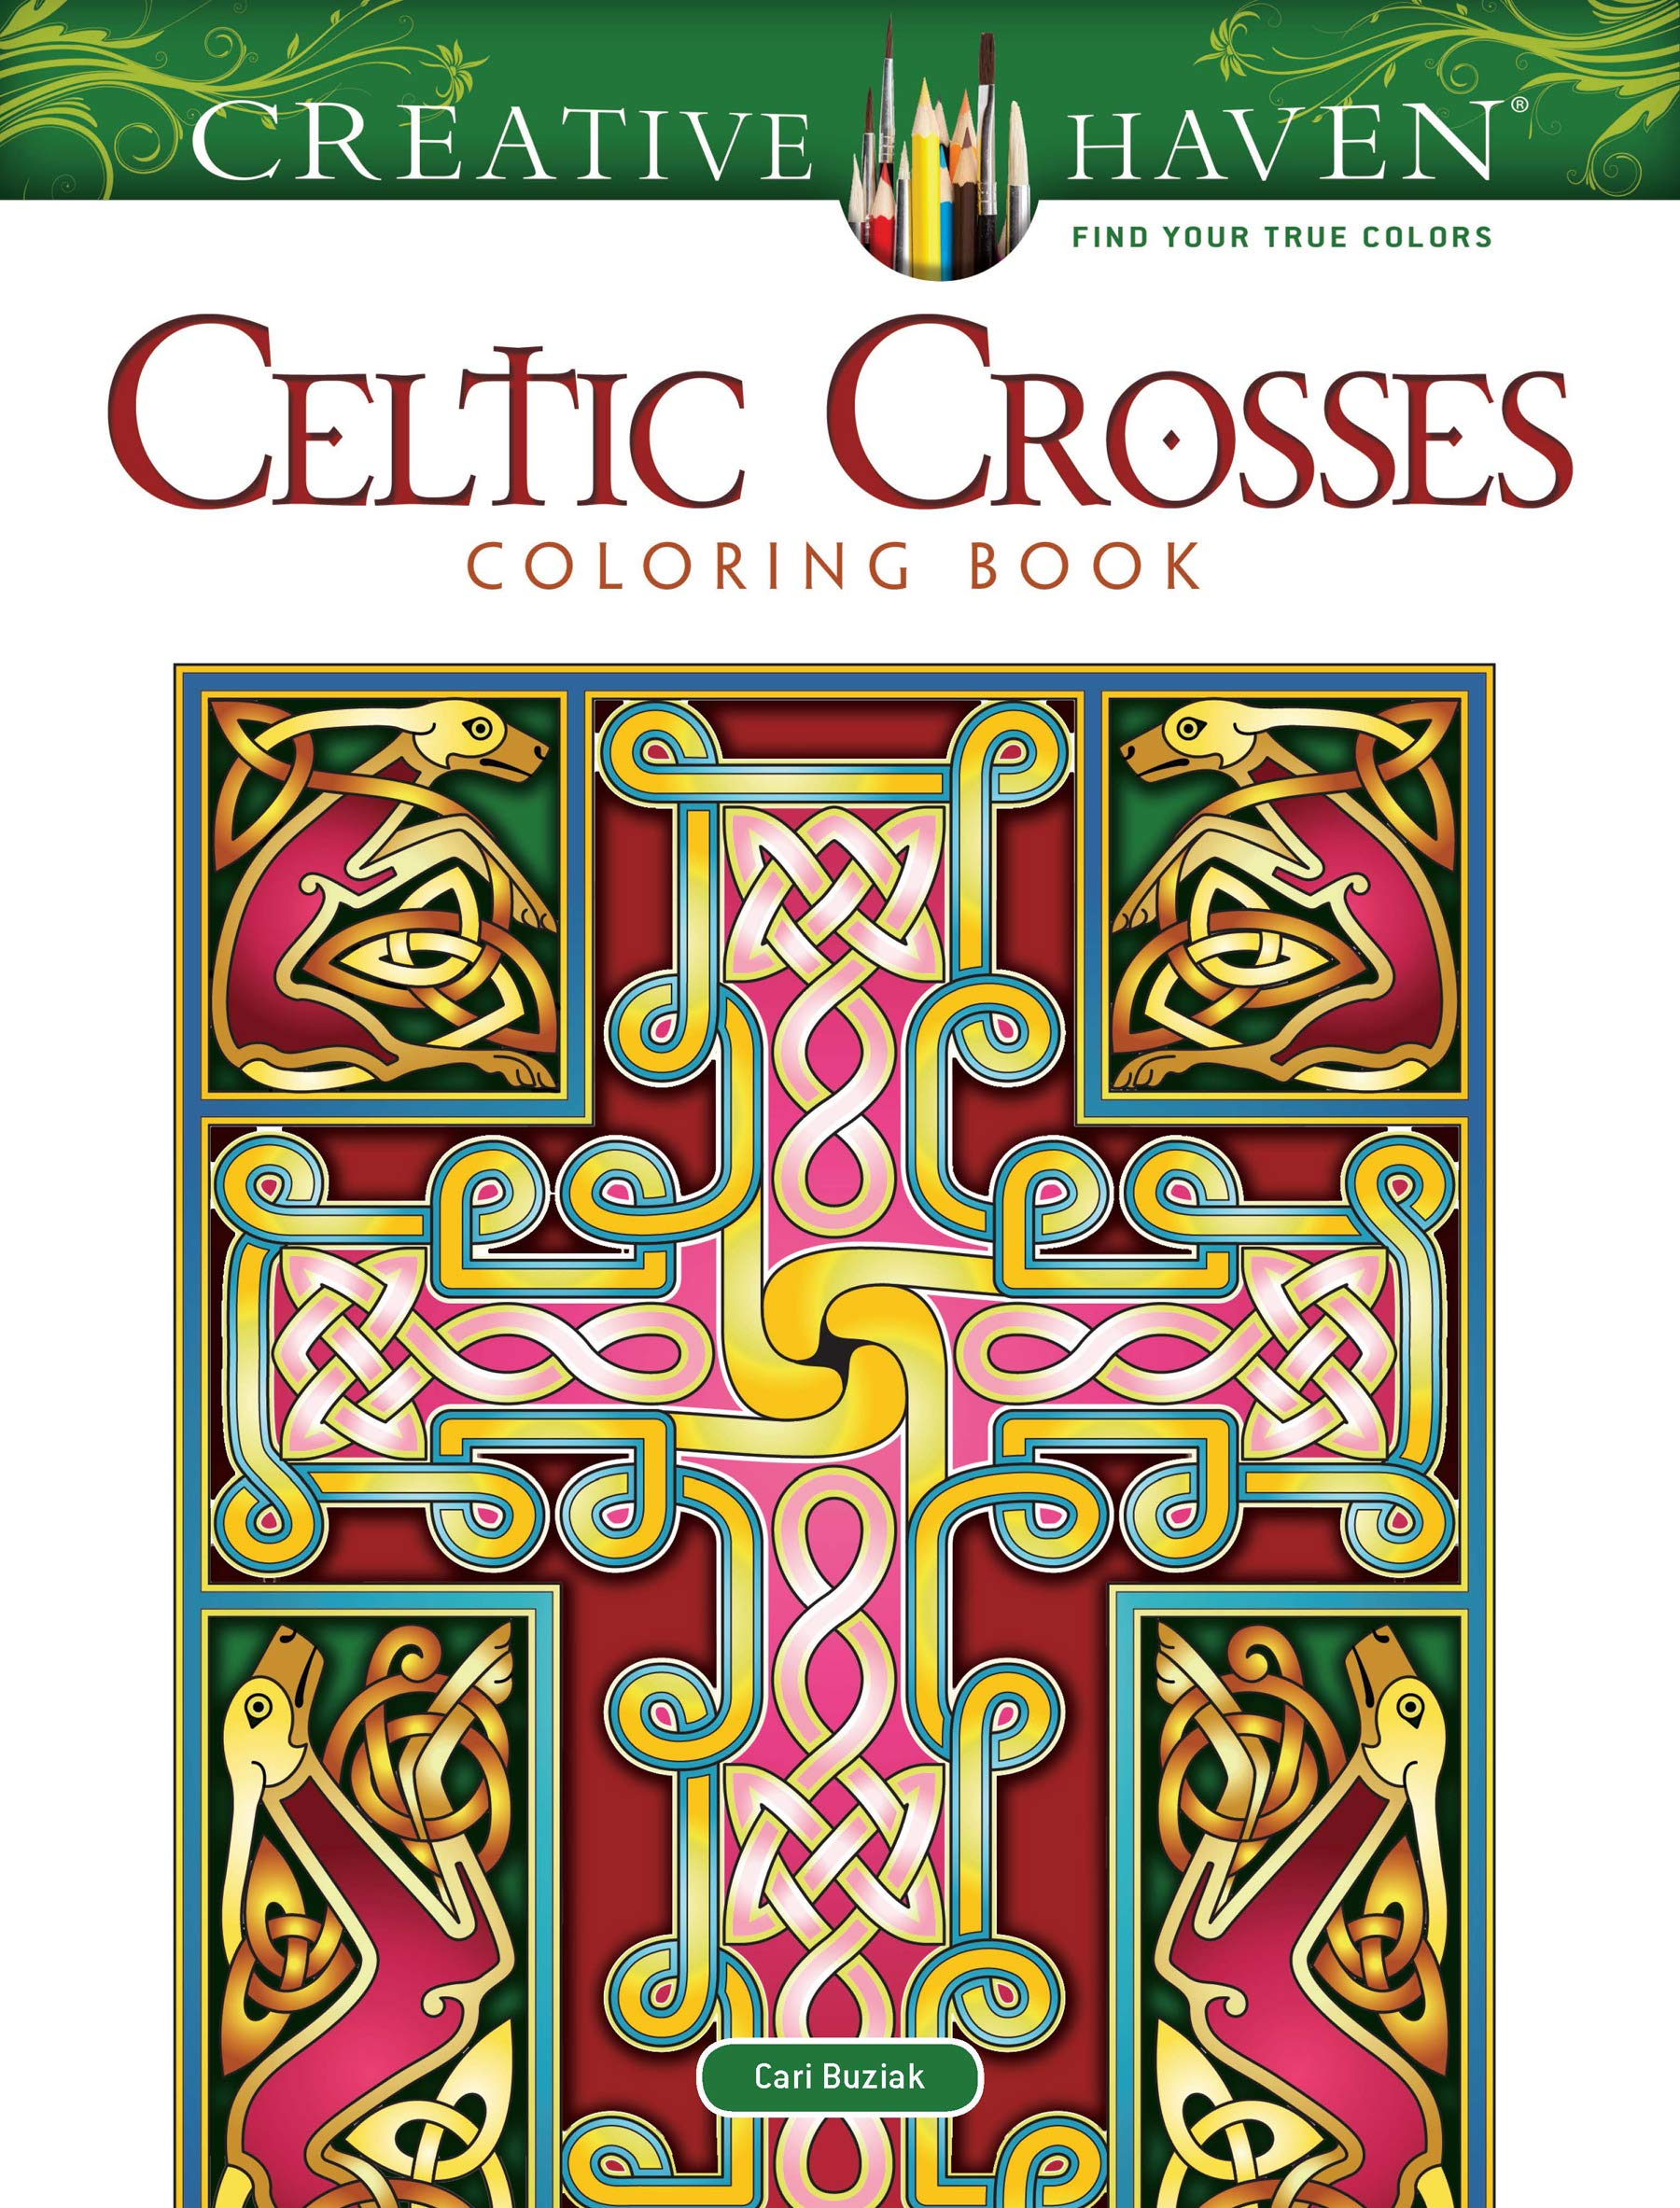 Amazon.com: Creative Haven Celtic Crosses Coloring Book (Adult Coloring)  (0800759826681): Cari Buziak: Books